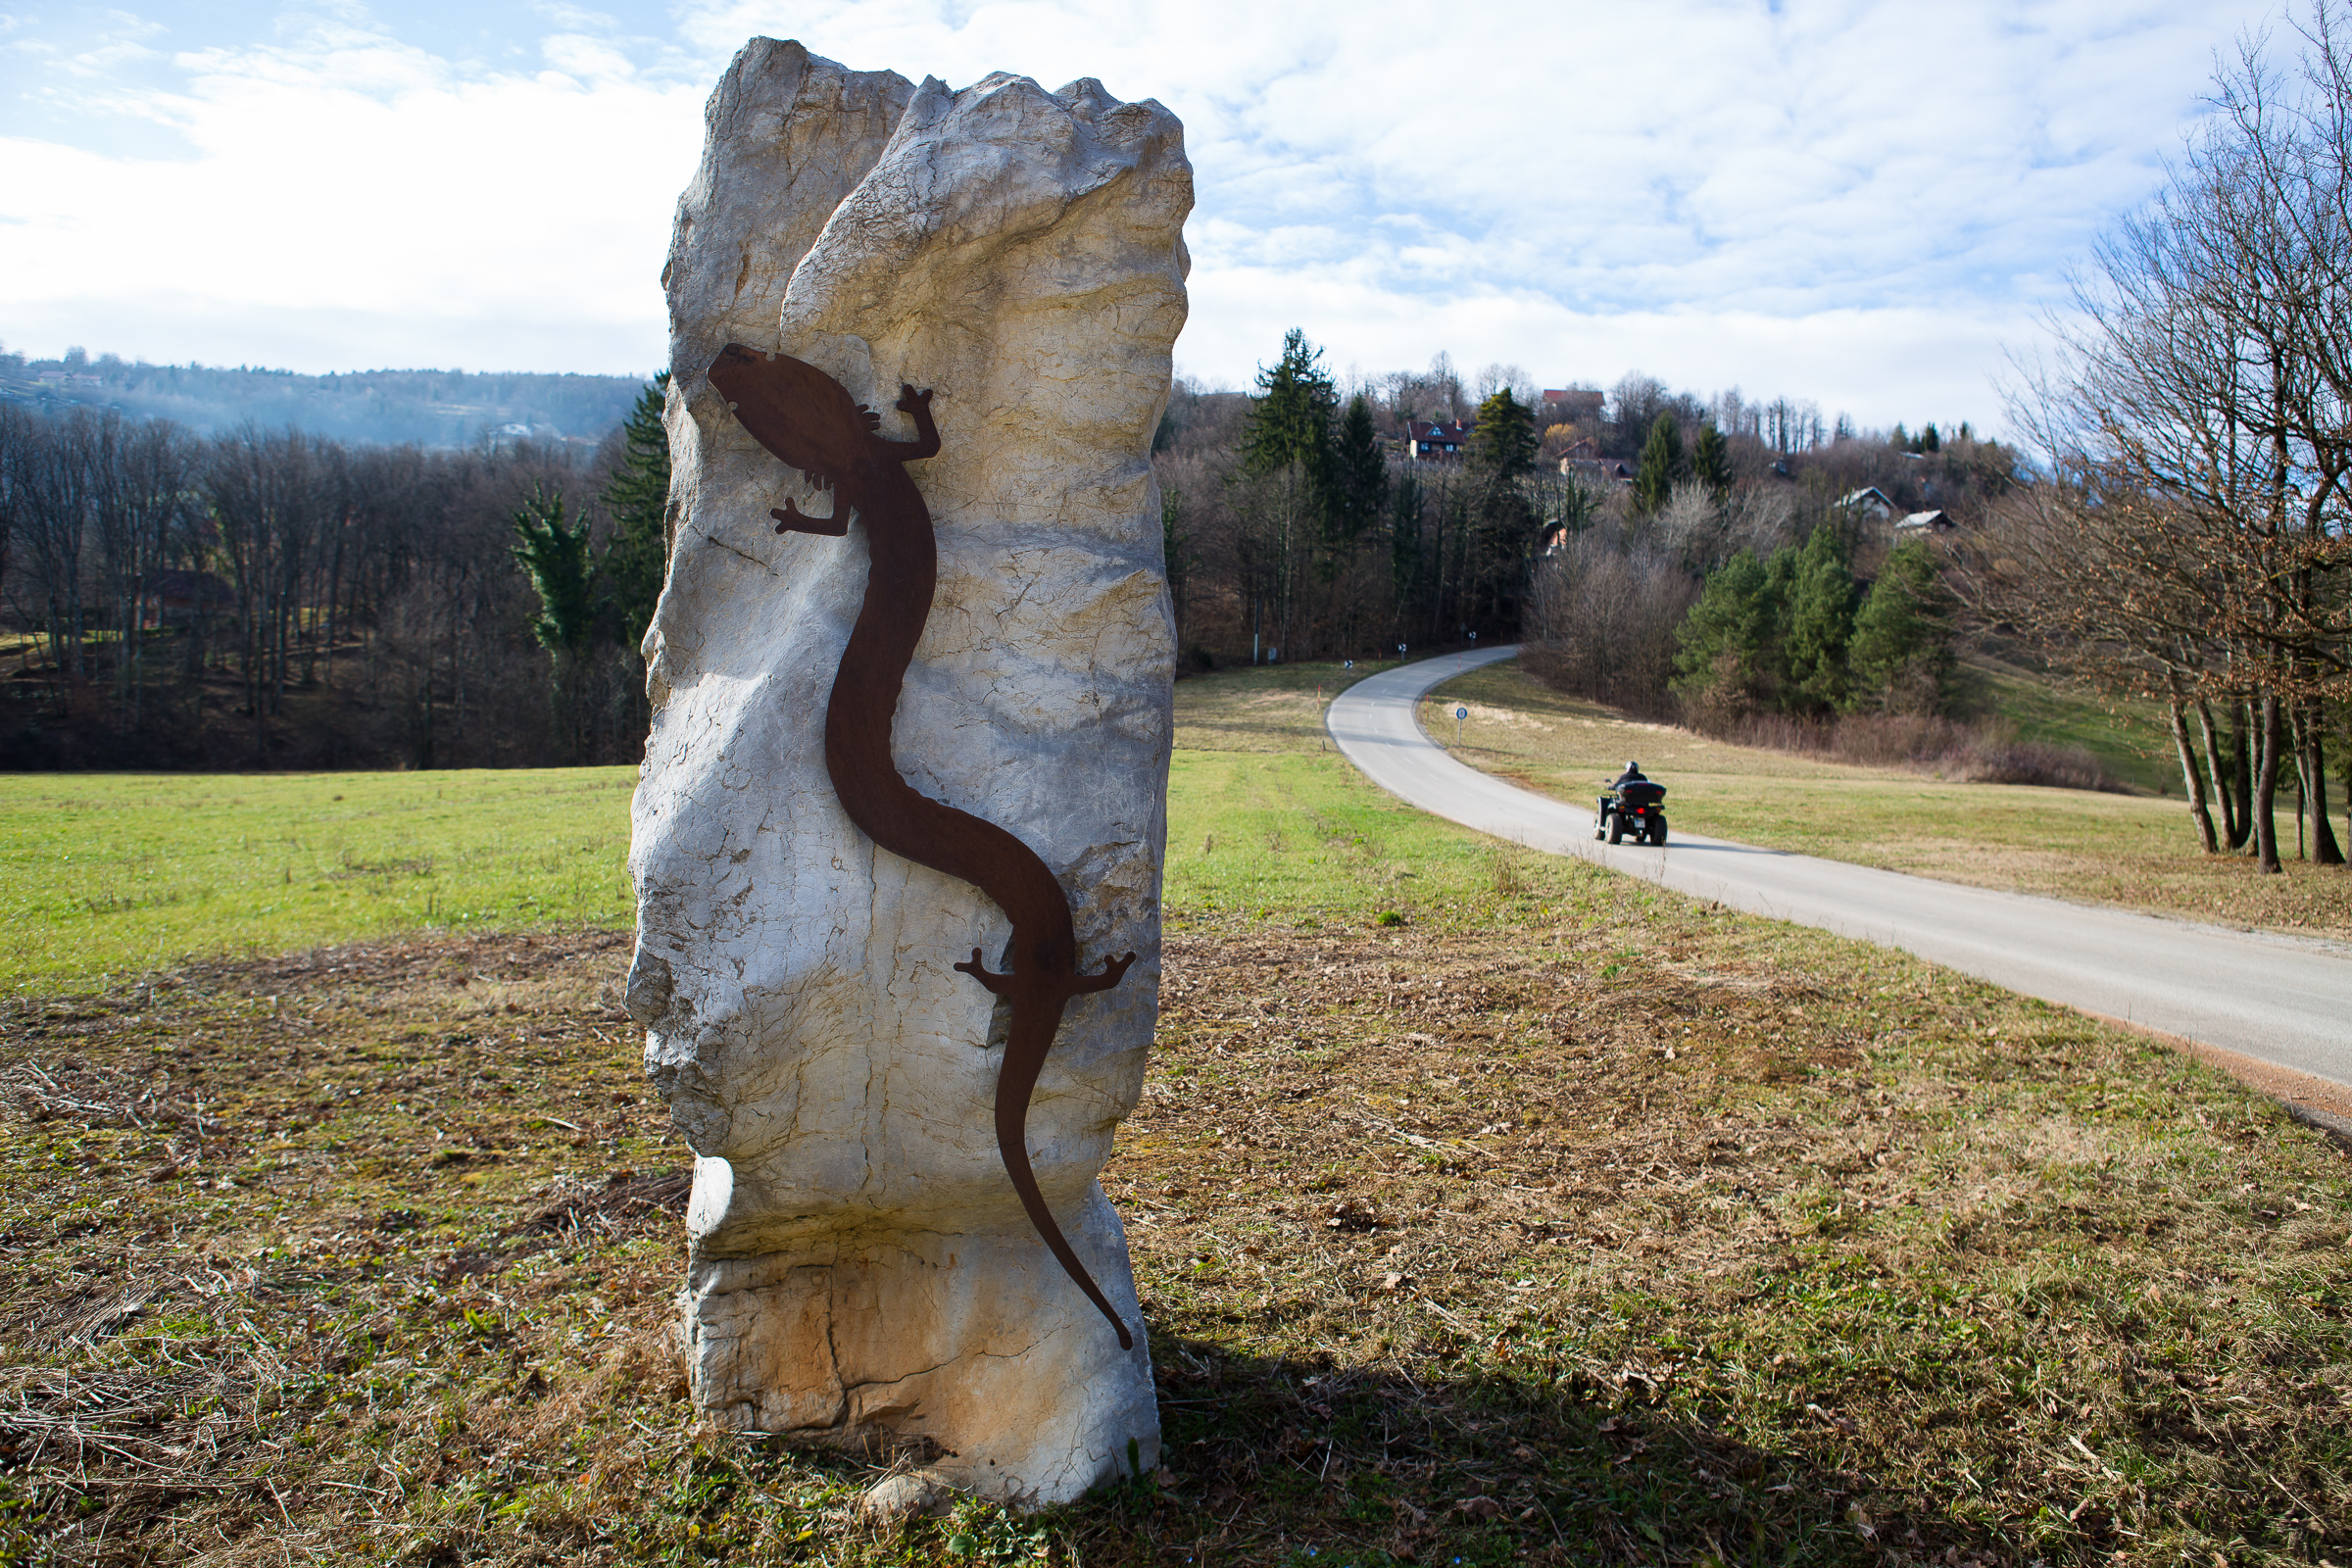 A sculpture marks a country road that leads to one of the springs where the black olm lives.